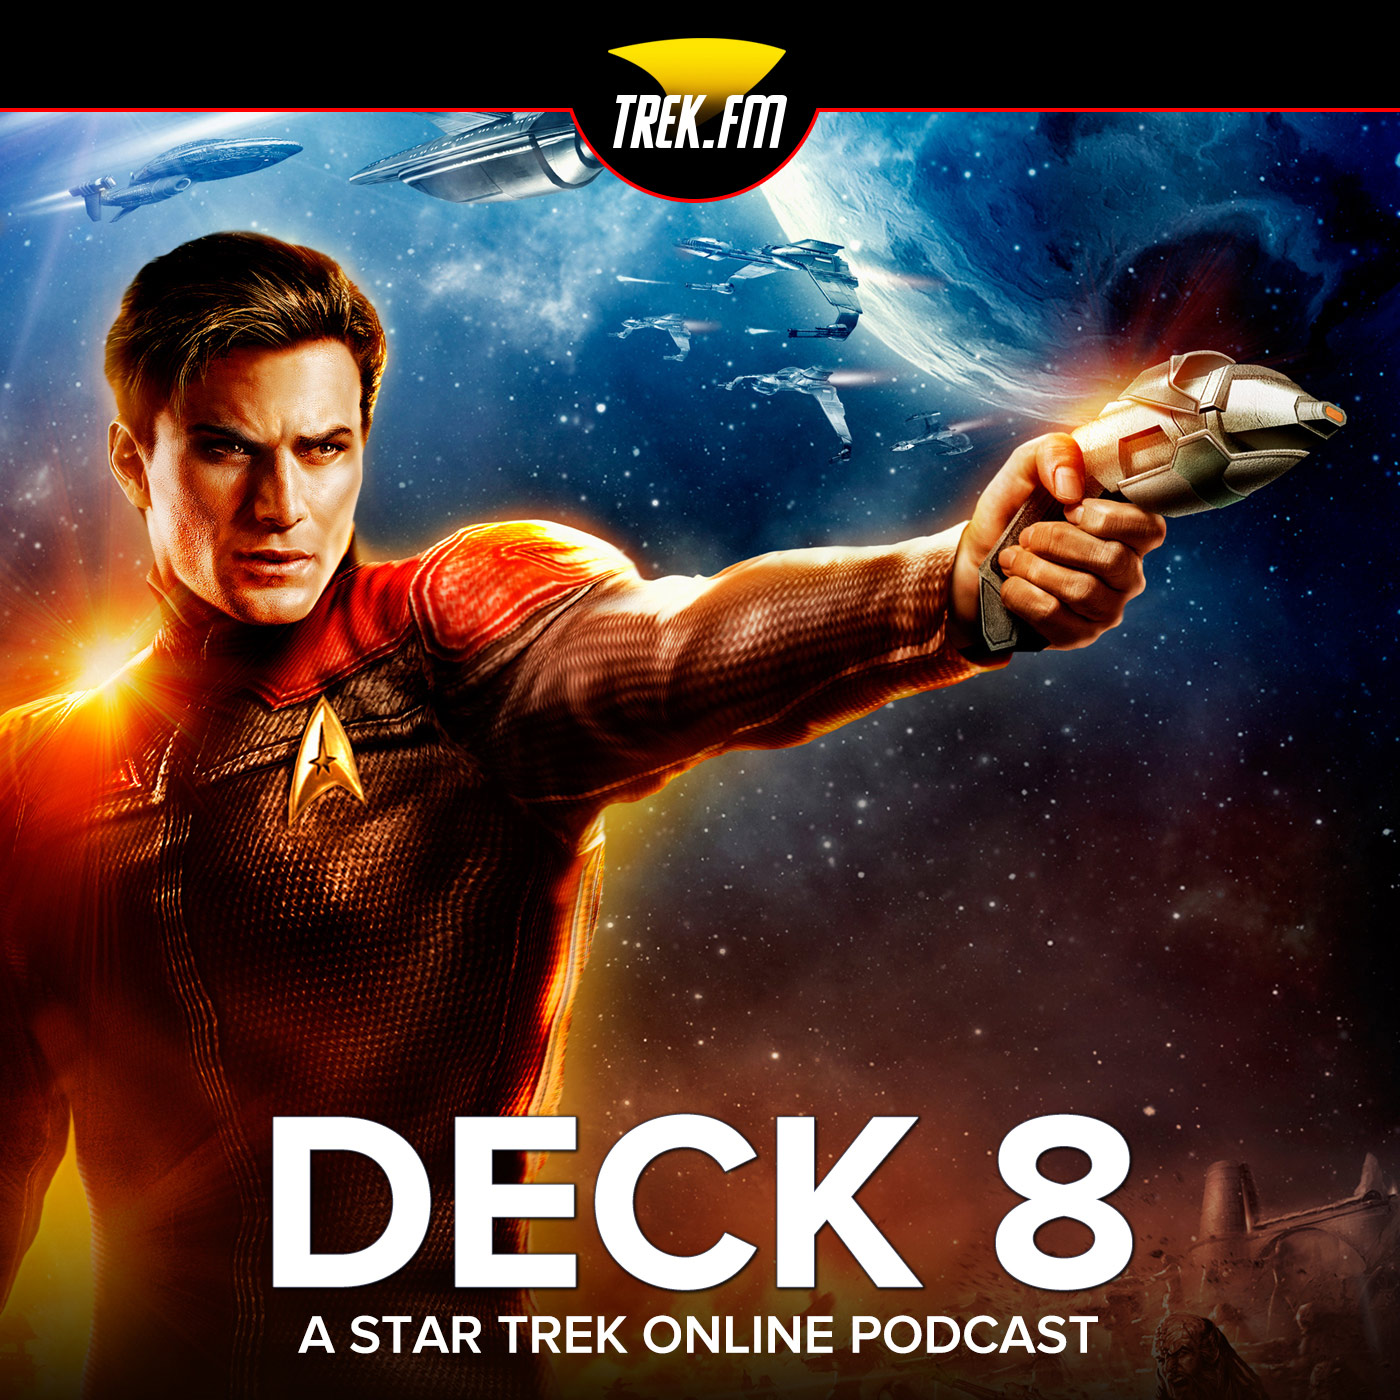 Star Trek Podcast | Deck Eight - Star Trek Online | Trek.fm